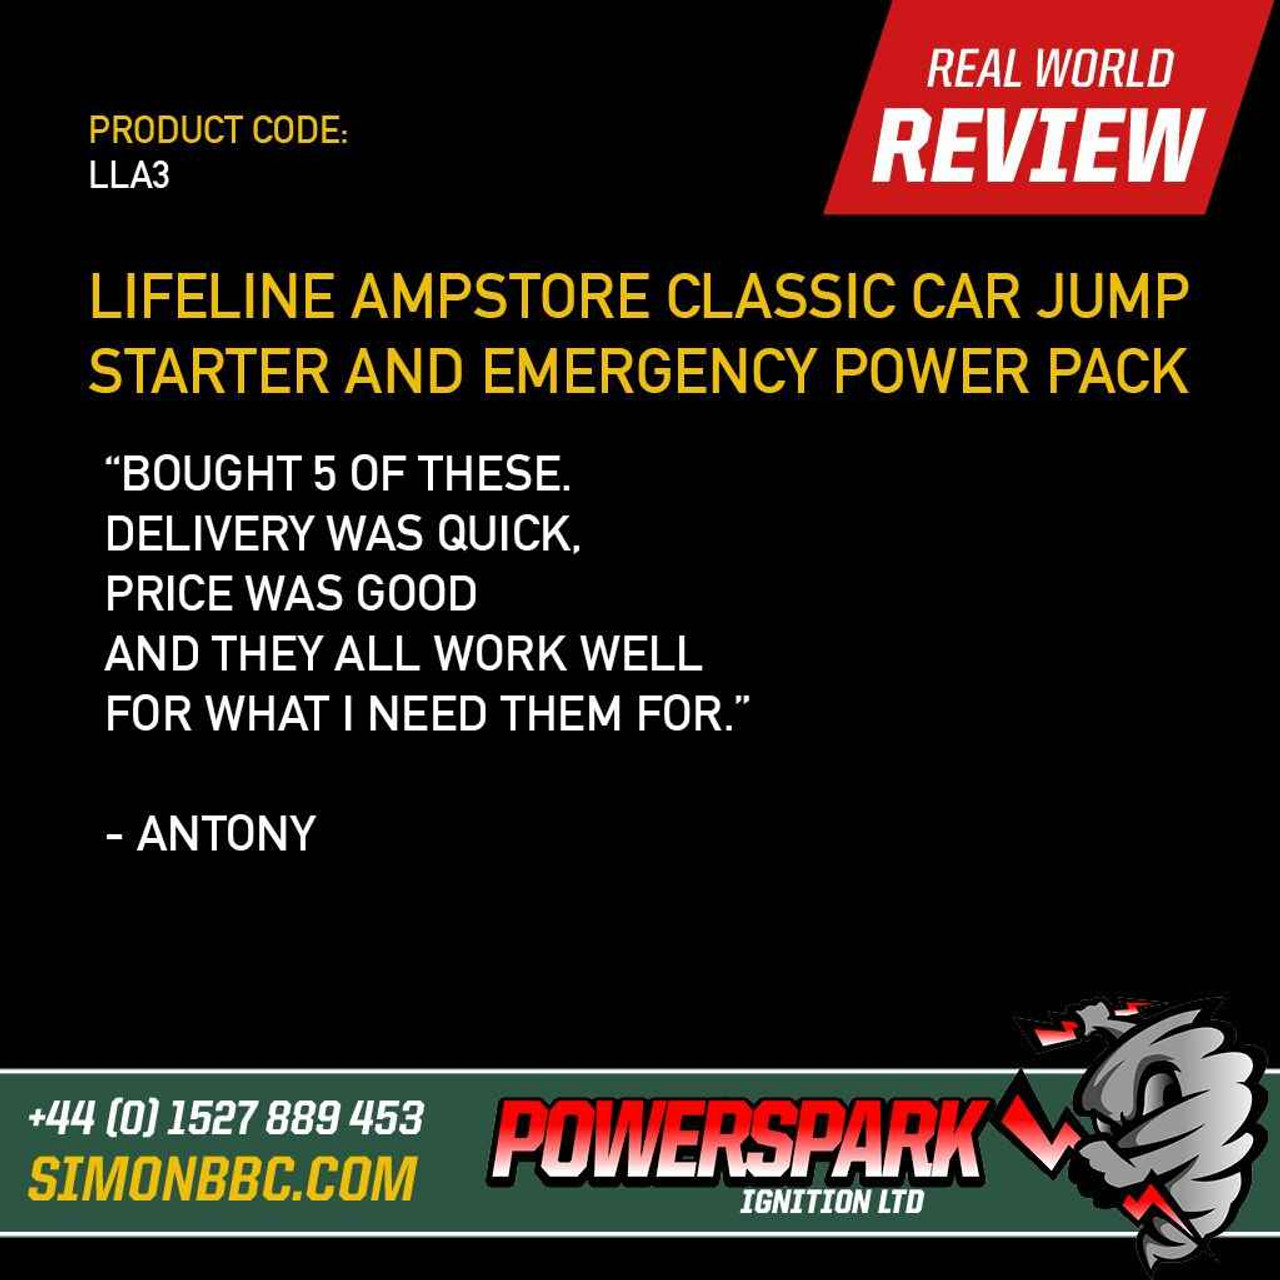 Lifeline Lifeline Ampstore Plus Classic Car Jump Starter and Emergency Power Pack